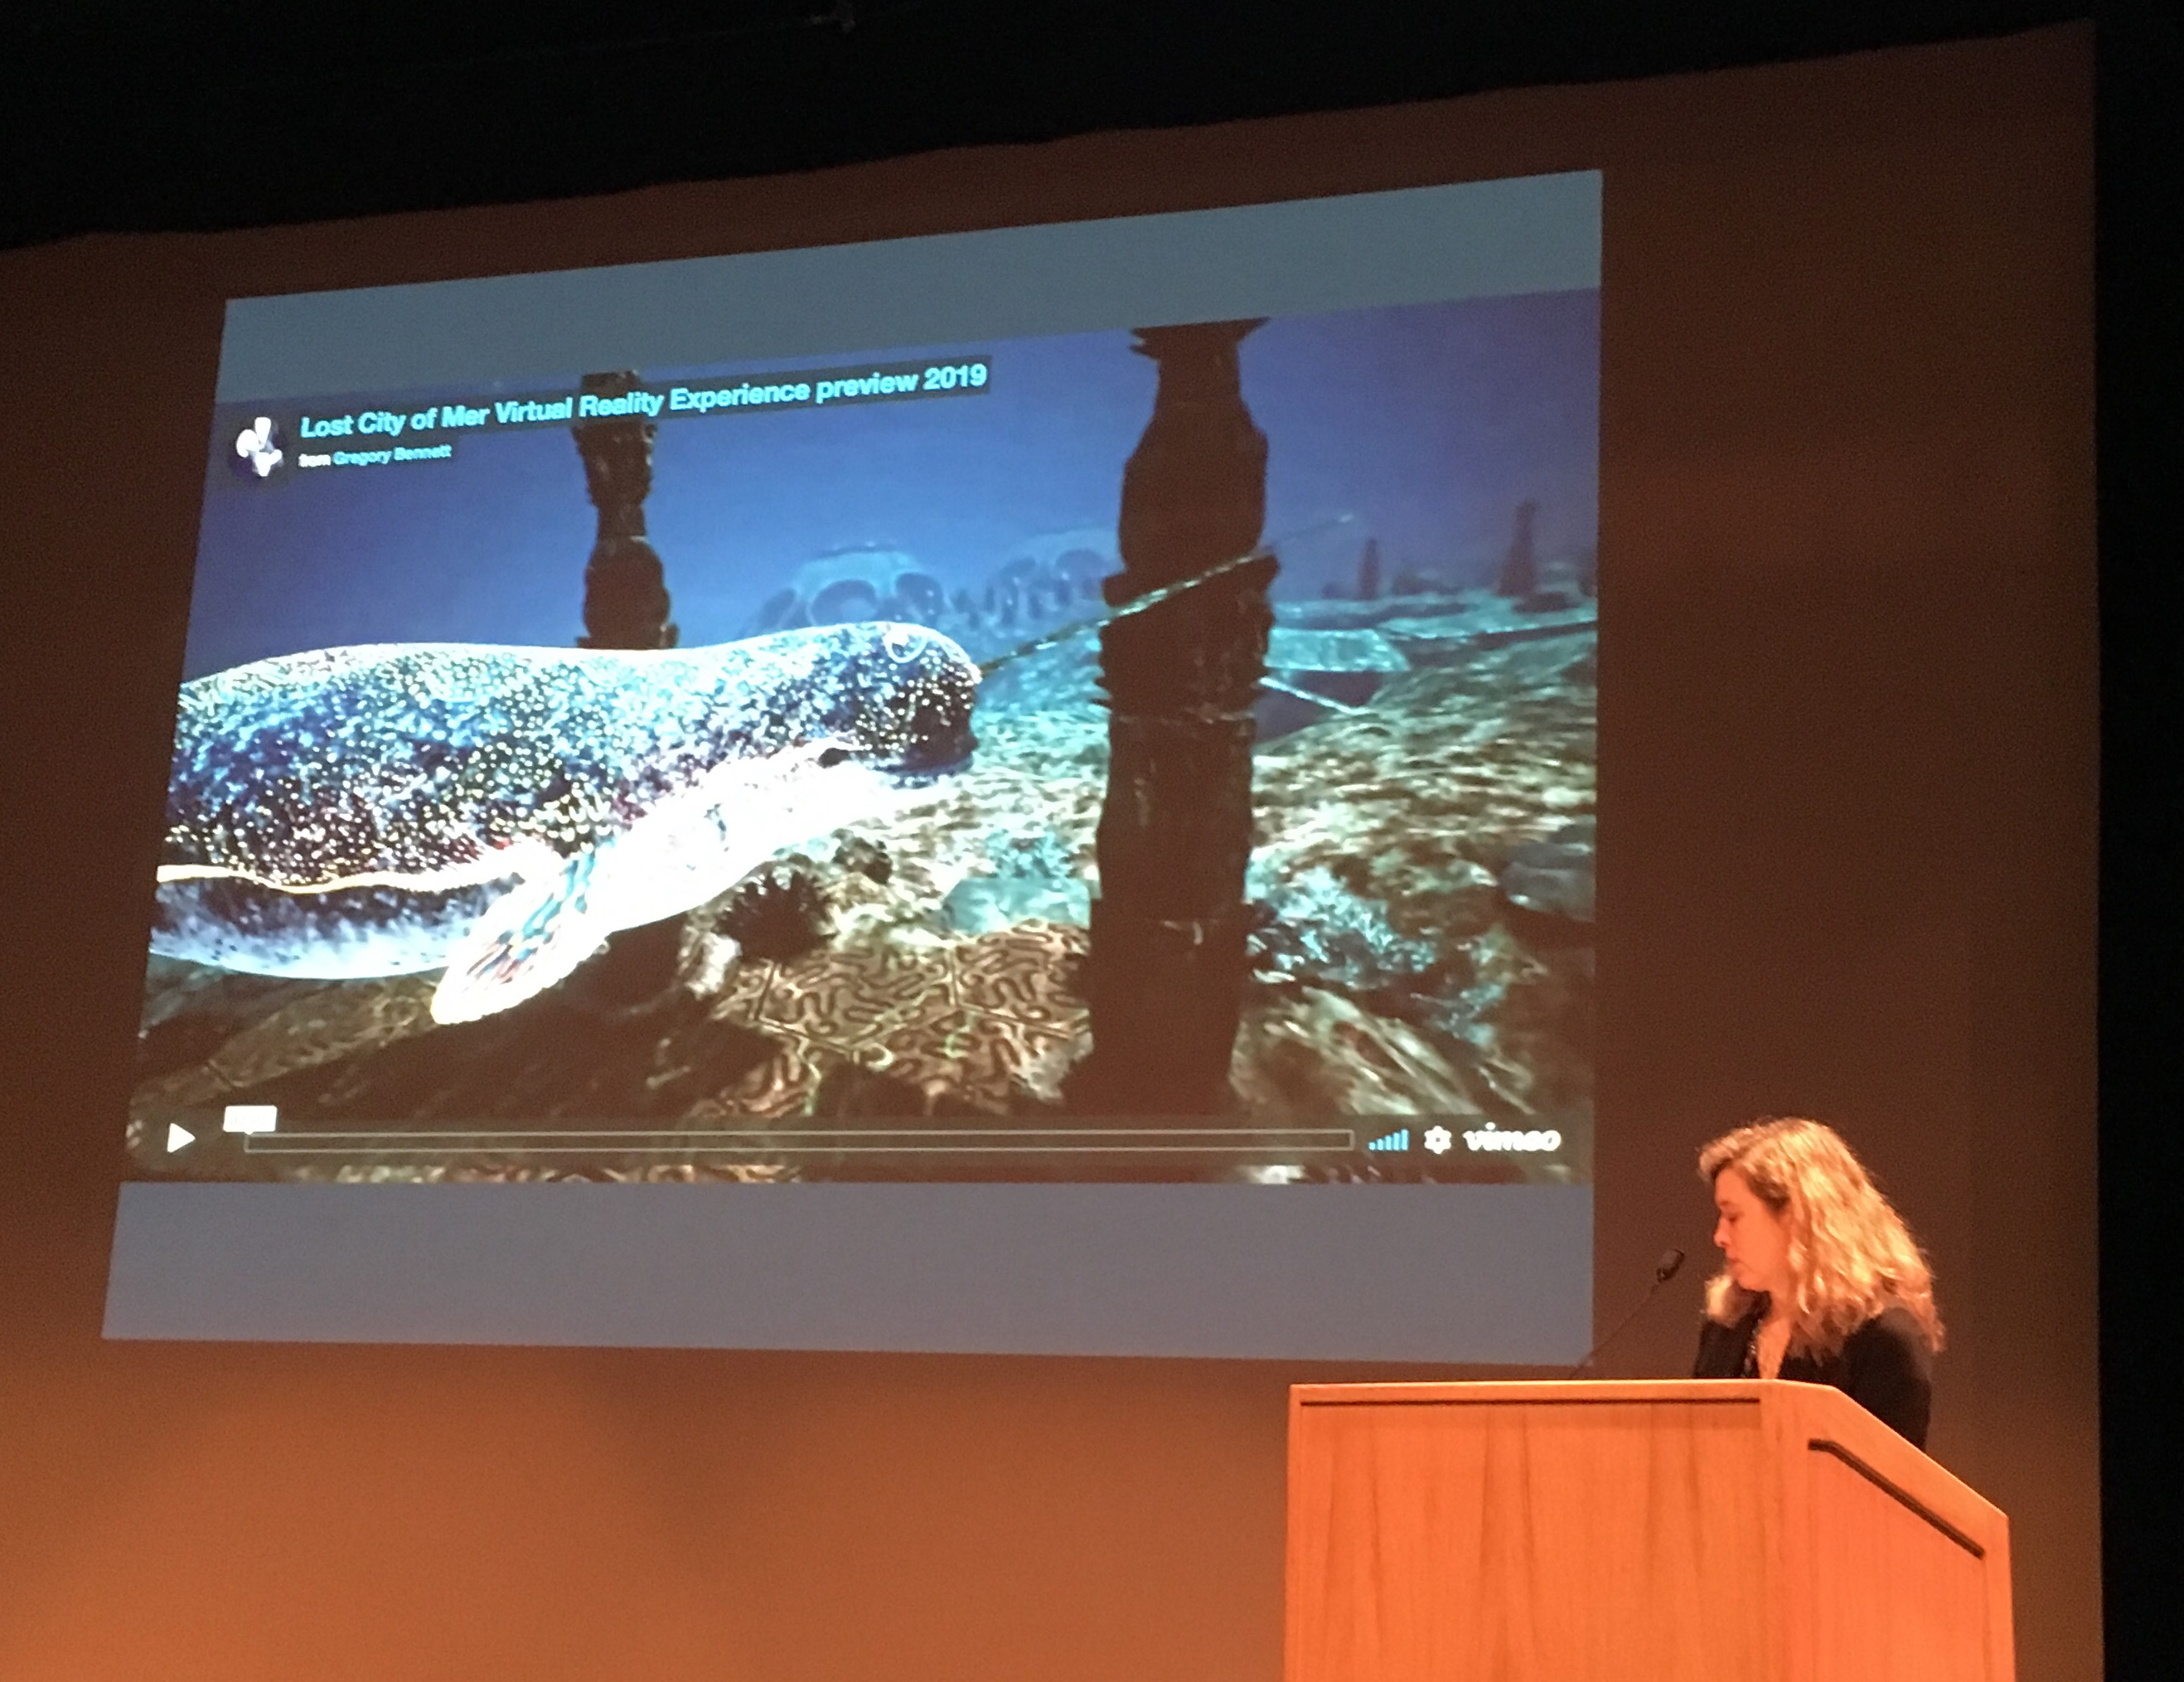 Liz Canner presenting on Lost City of Mer